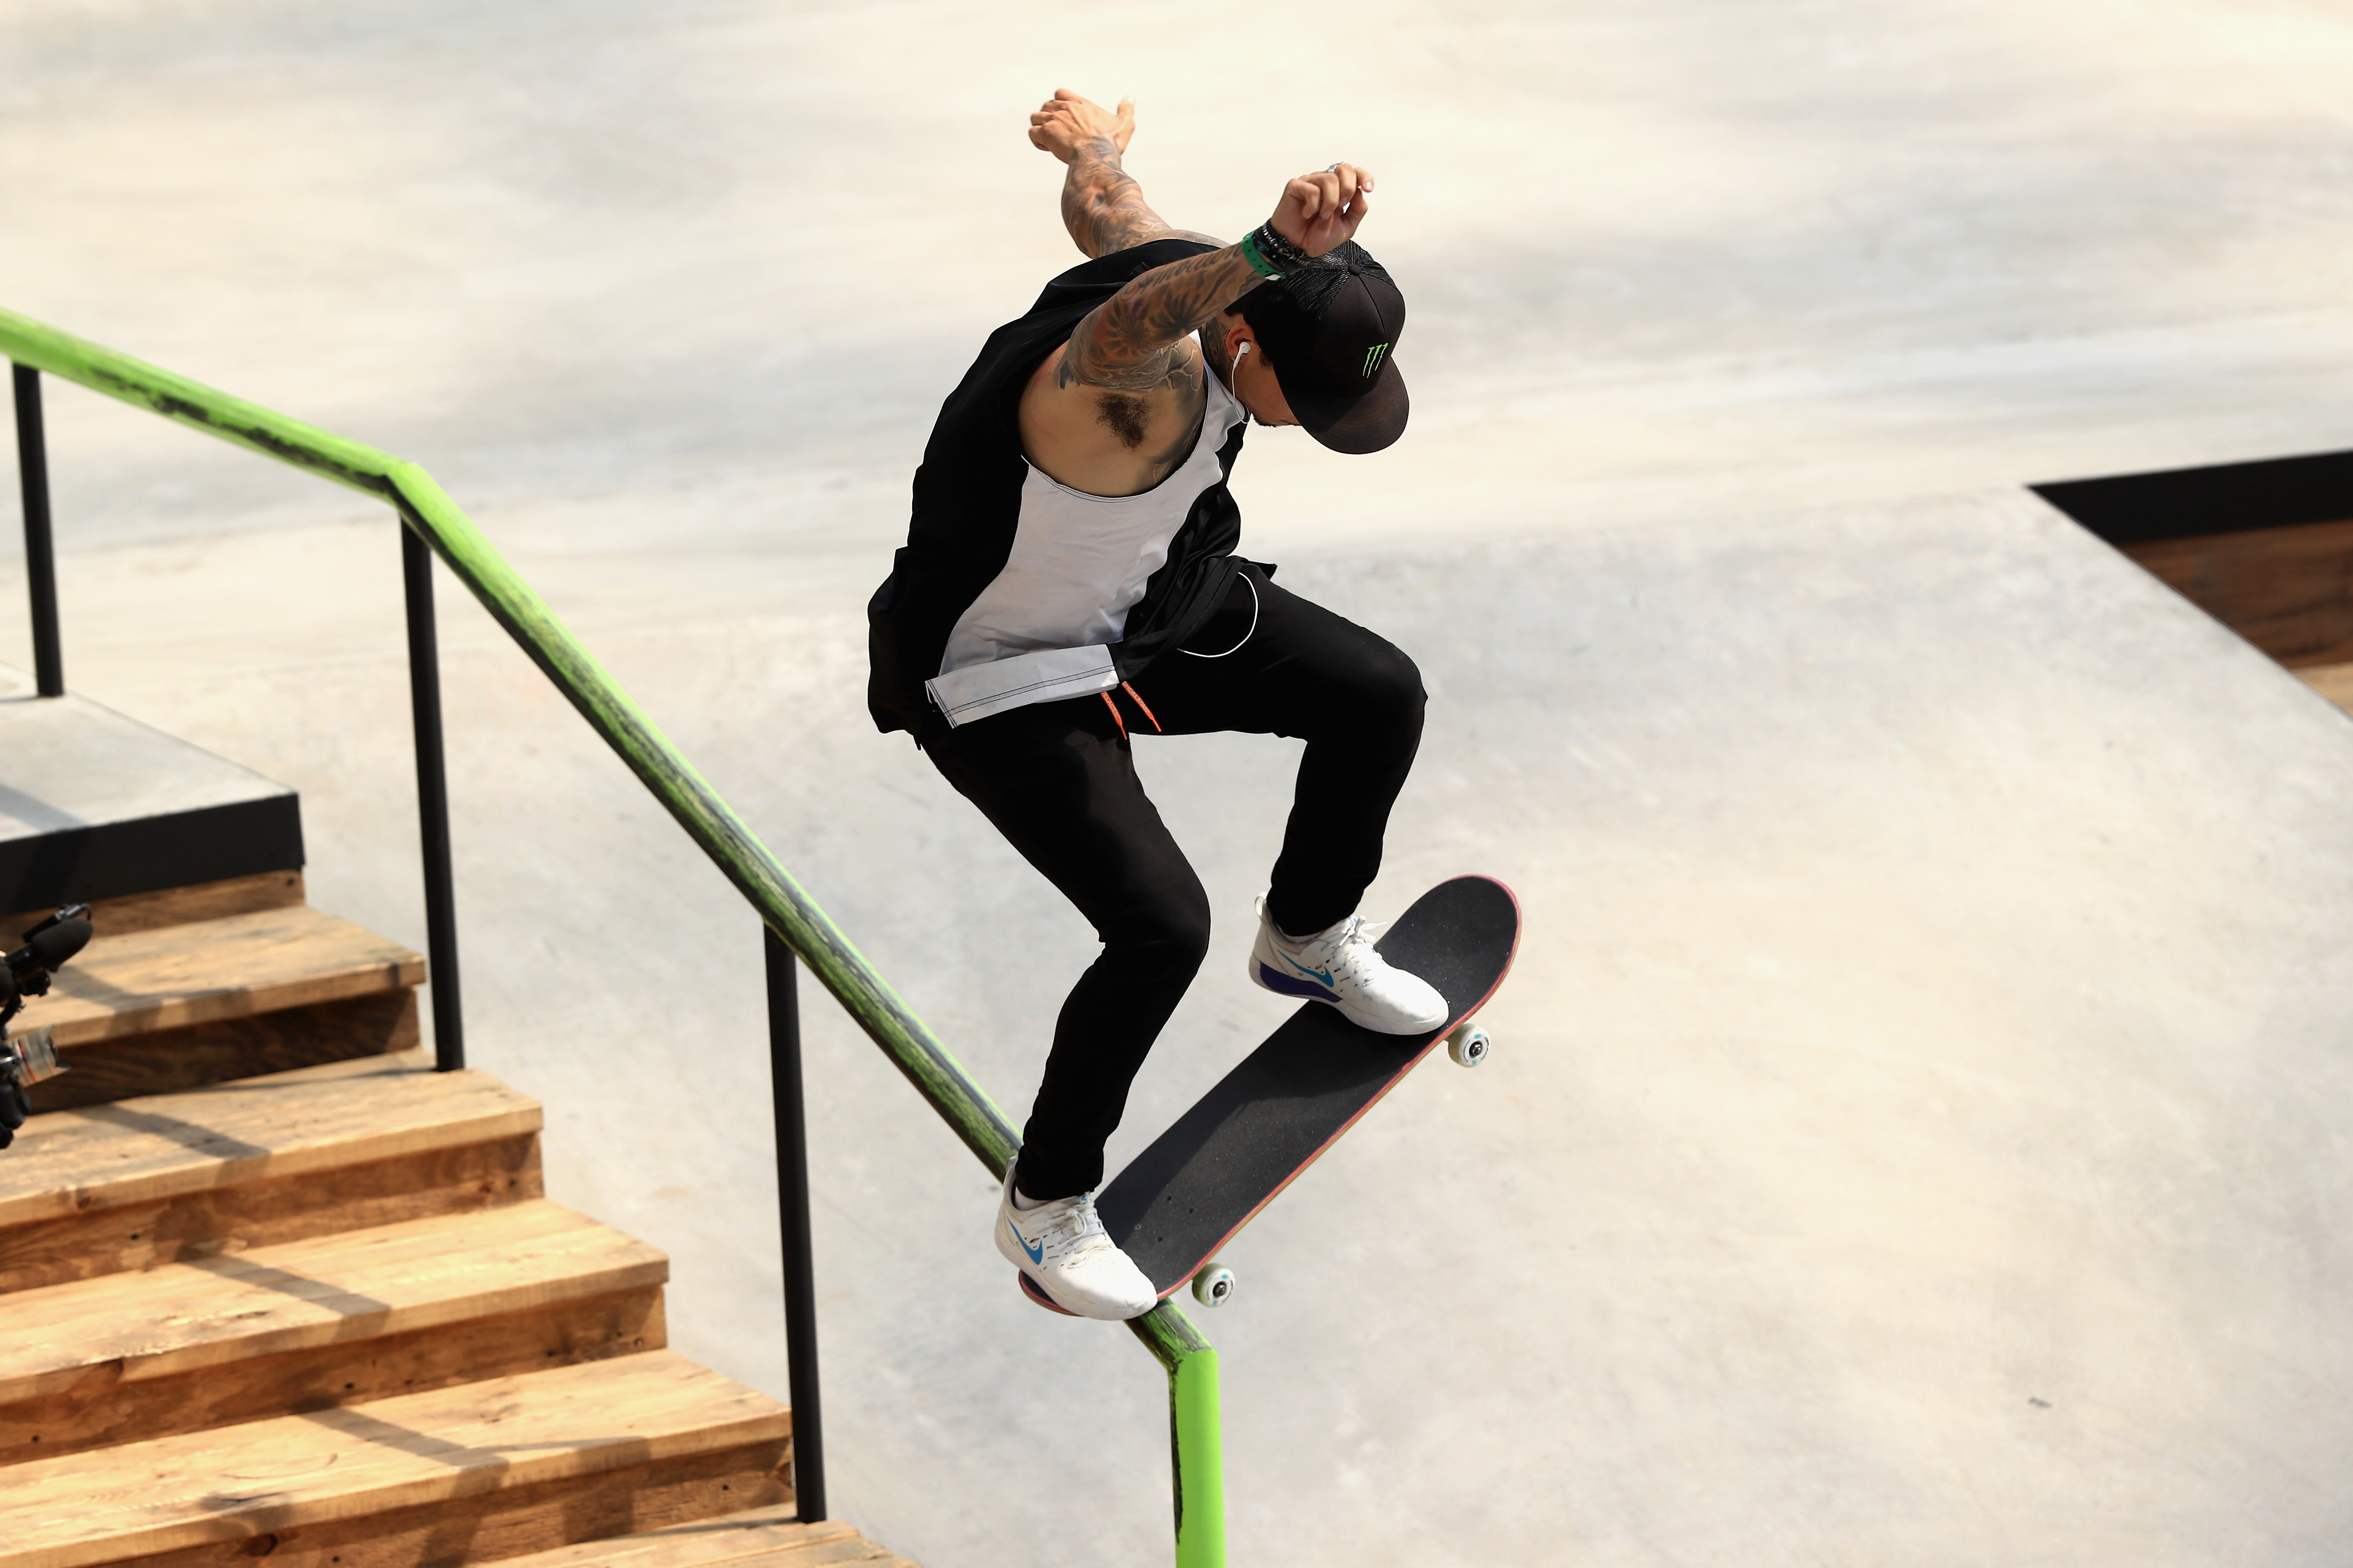 Nyjah Huston competes in the Men's Skateboard Street during the ESPN X Games at U.S. Bank Stadium on July 22, 2018 in Minneapolis, Minnesota.